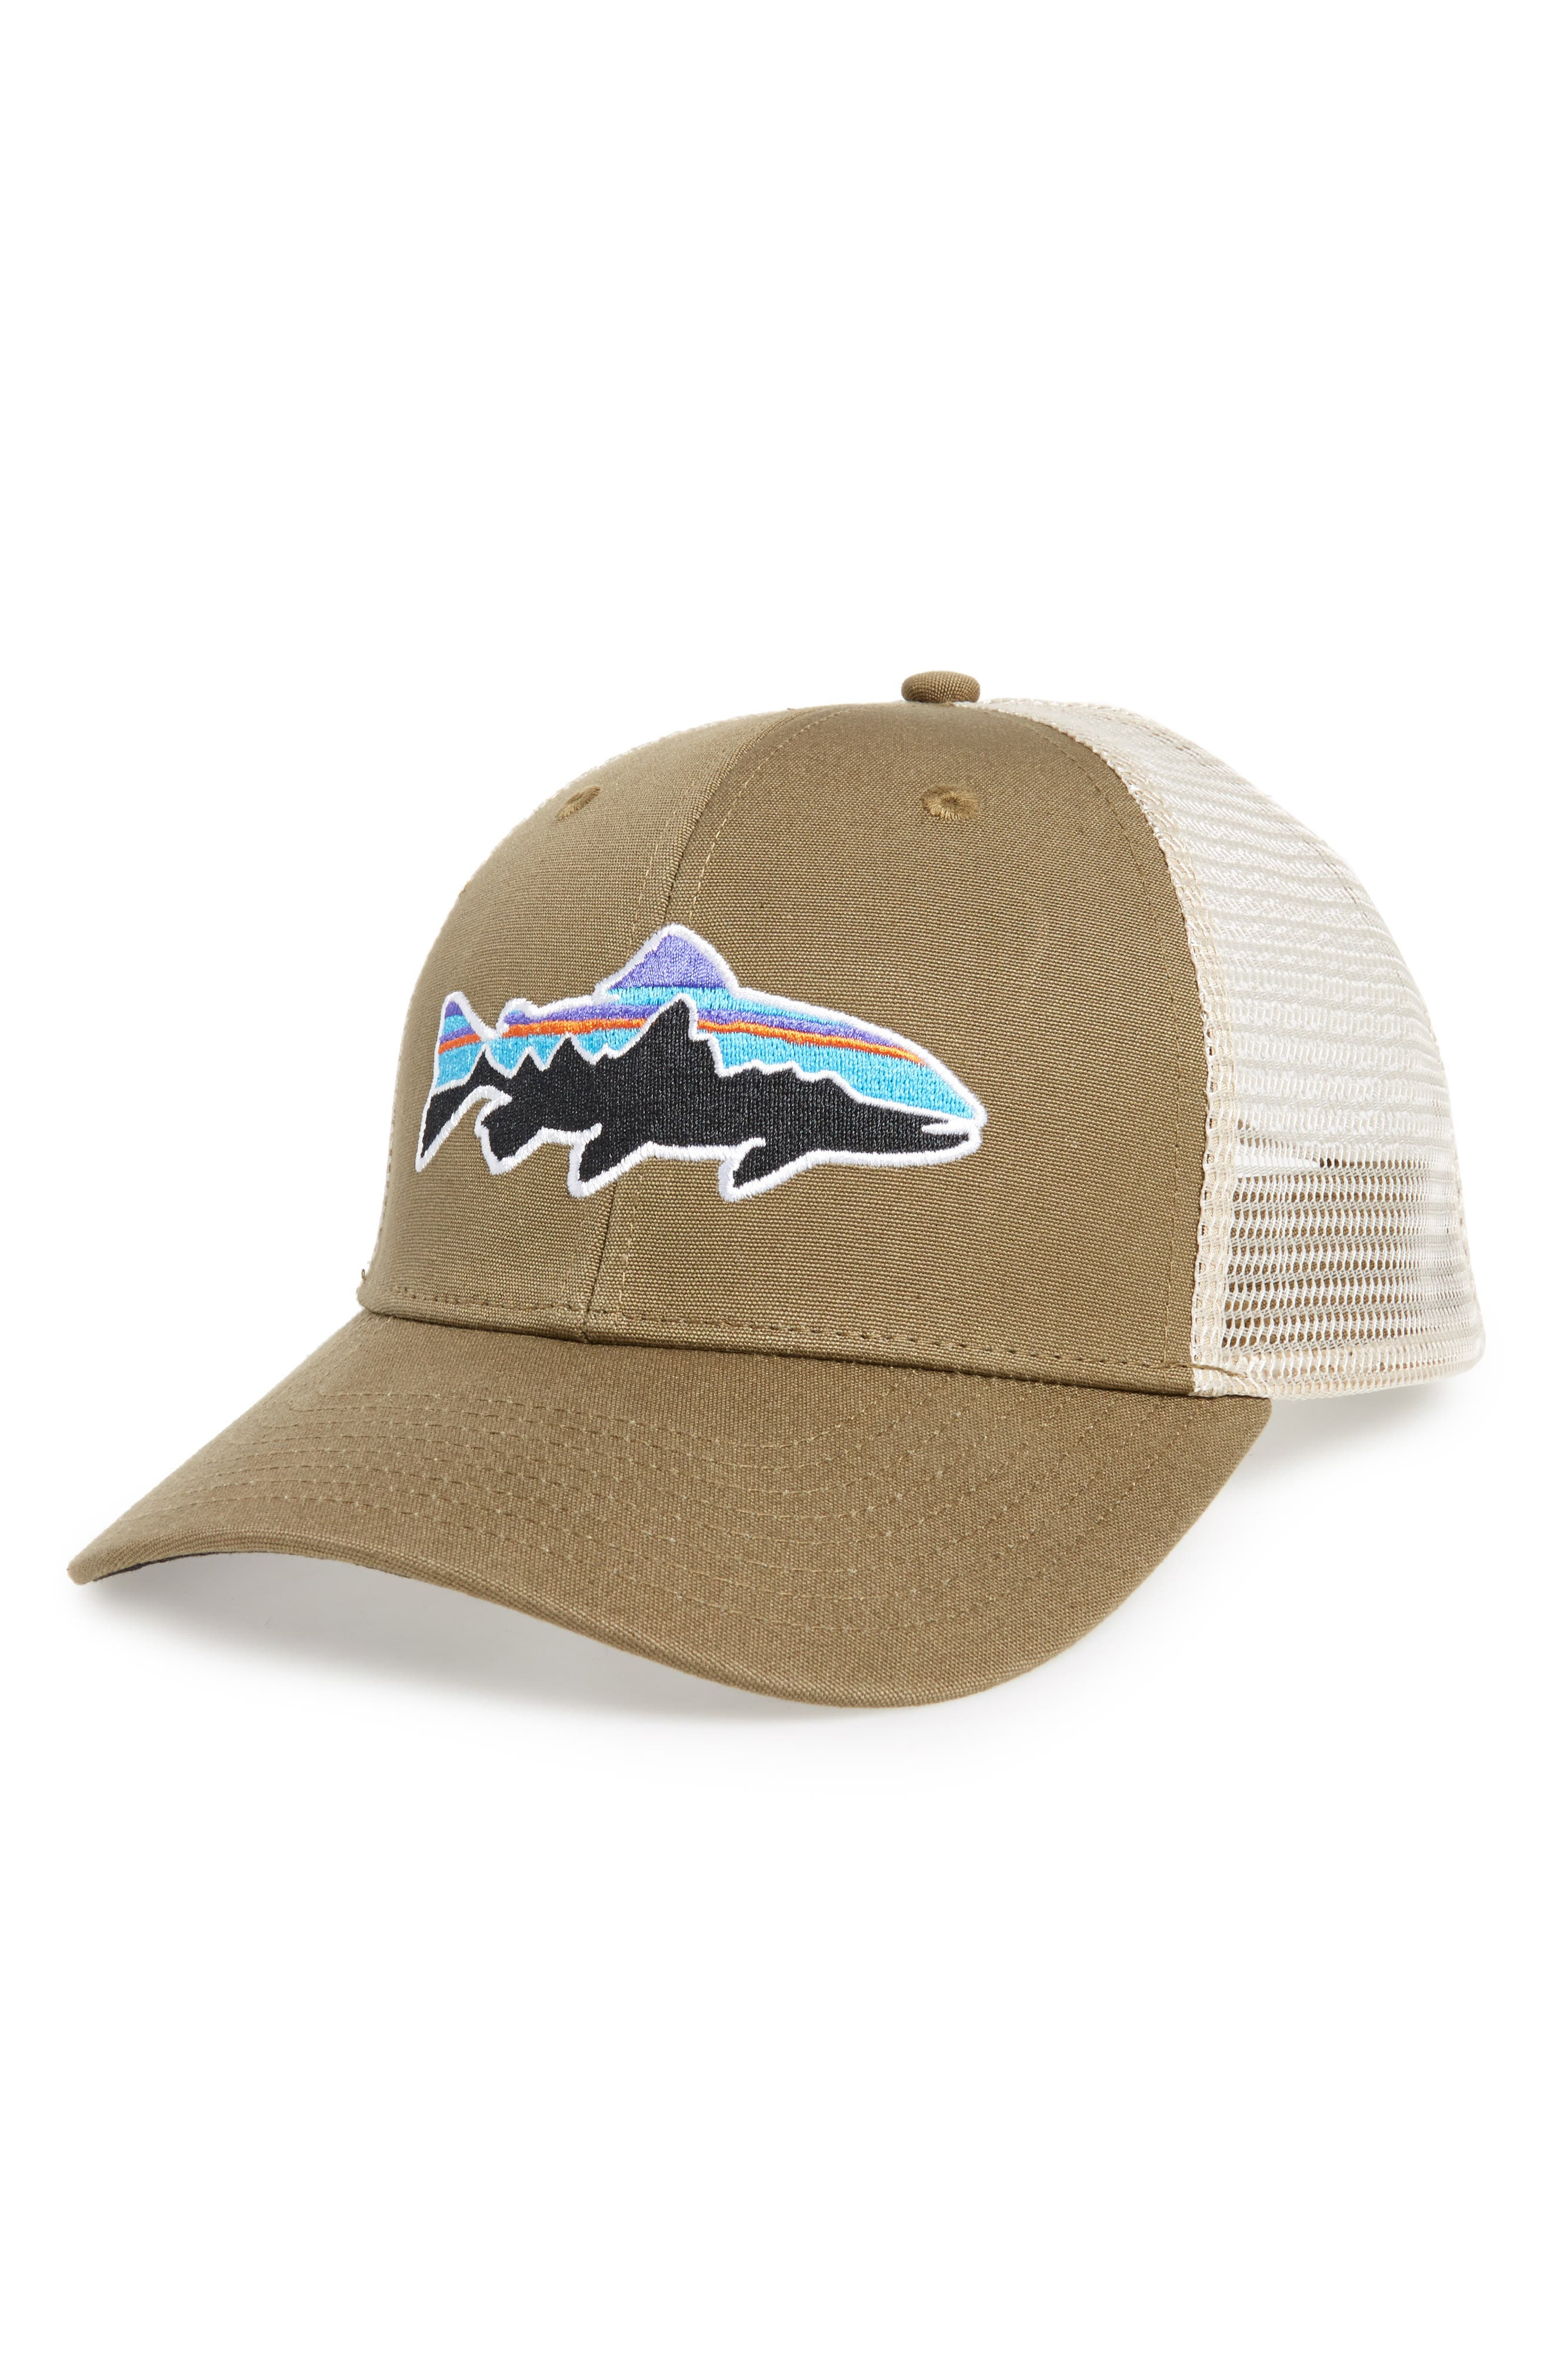 Main Image - Patagonia 'Fitz Roy - Trout' Trucker Hat